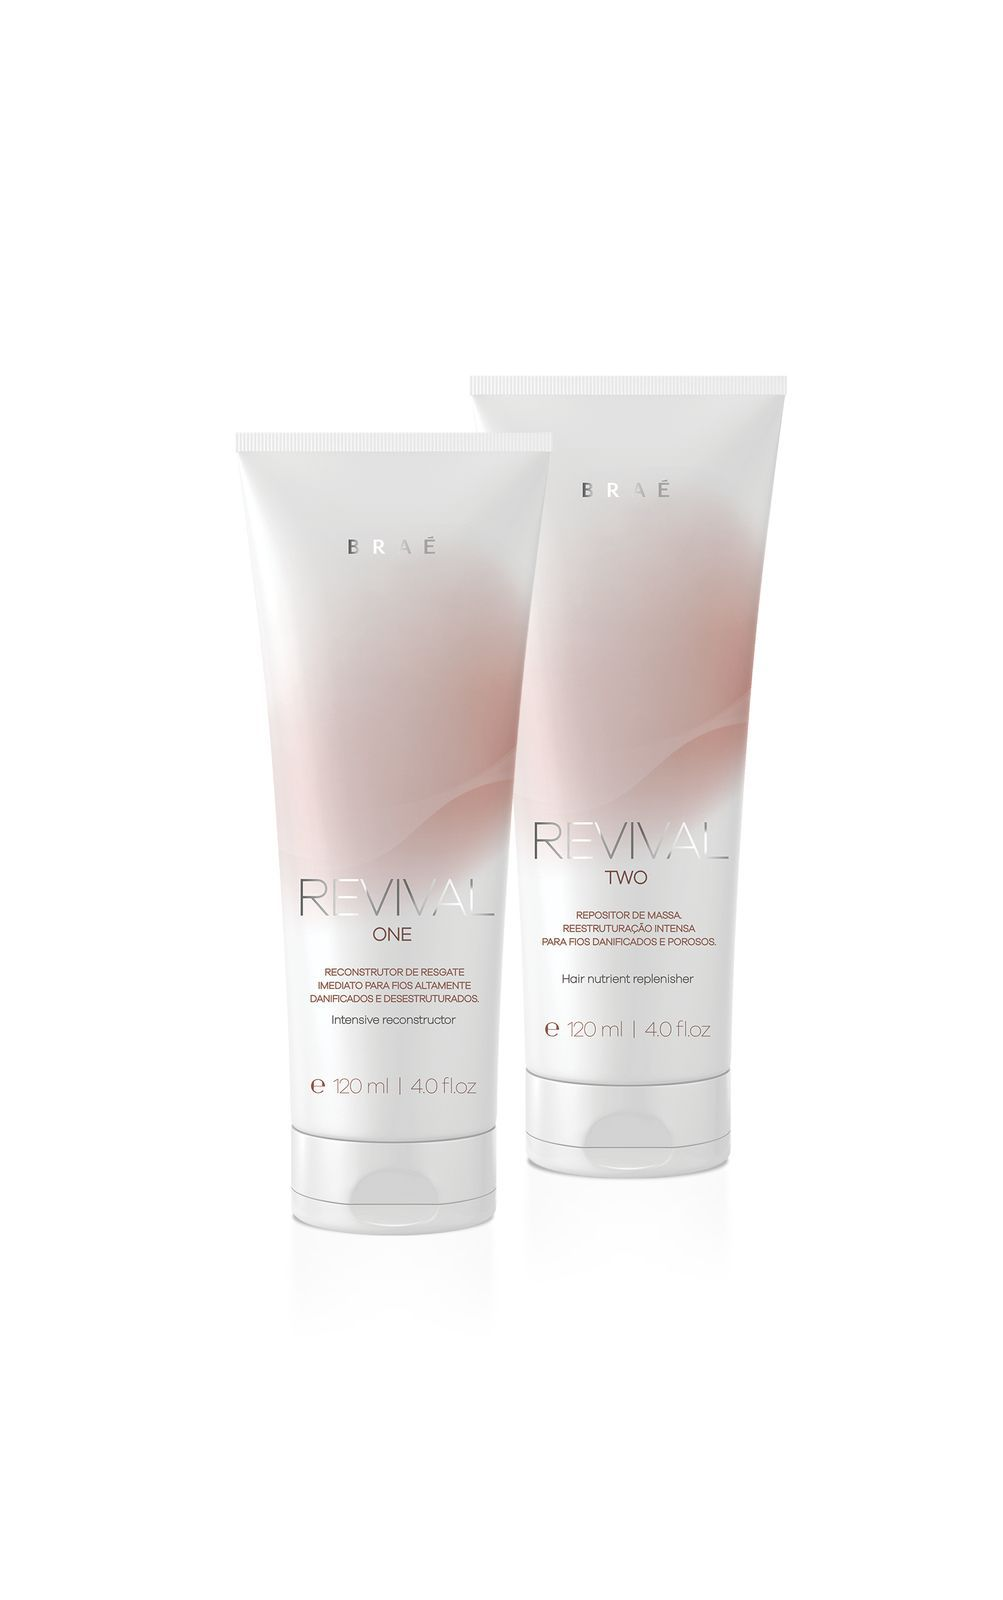 BRAÉ REVIVAL ONE E TWO KIT HOME CARE (2X120ML)